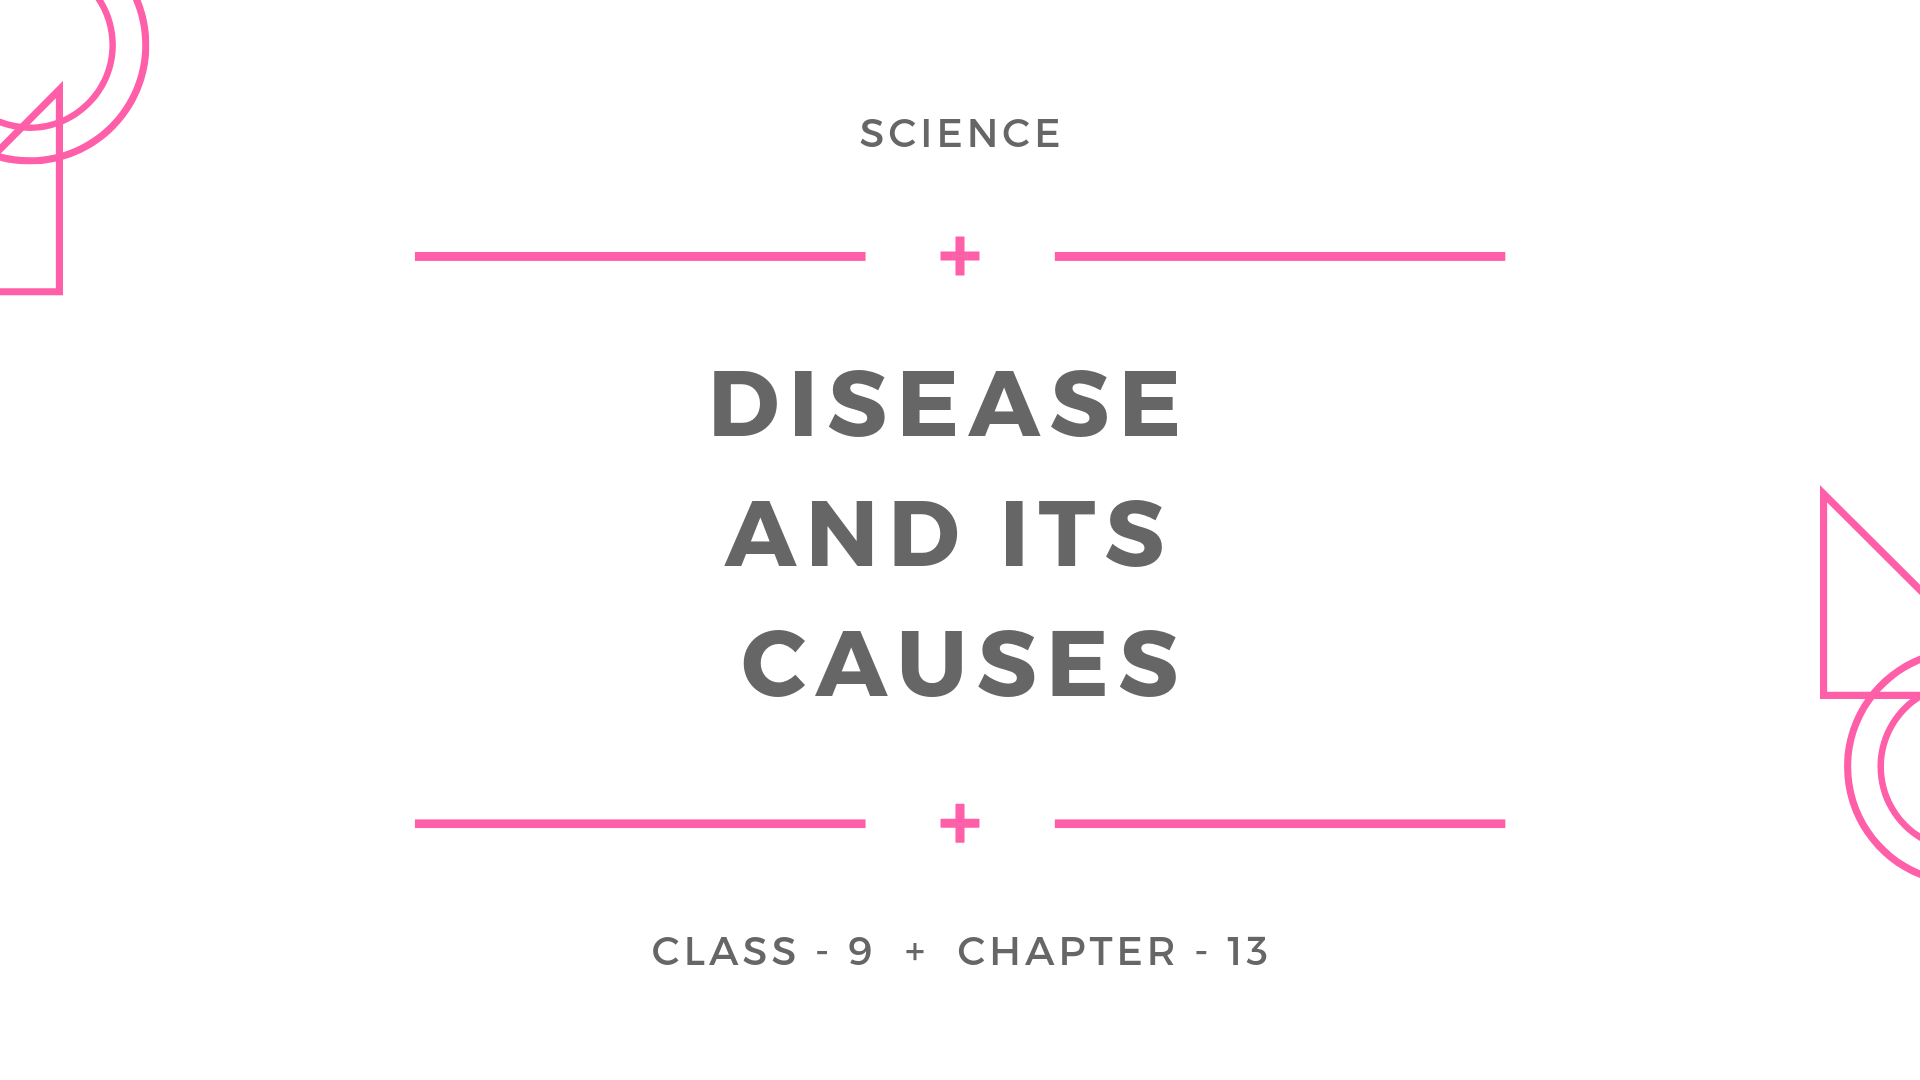 Diseases and their causes